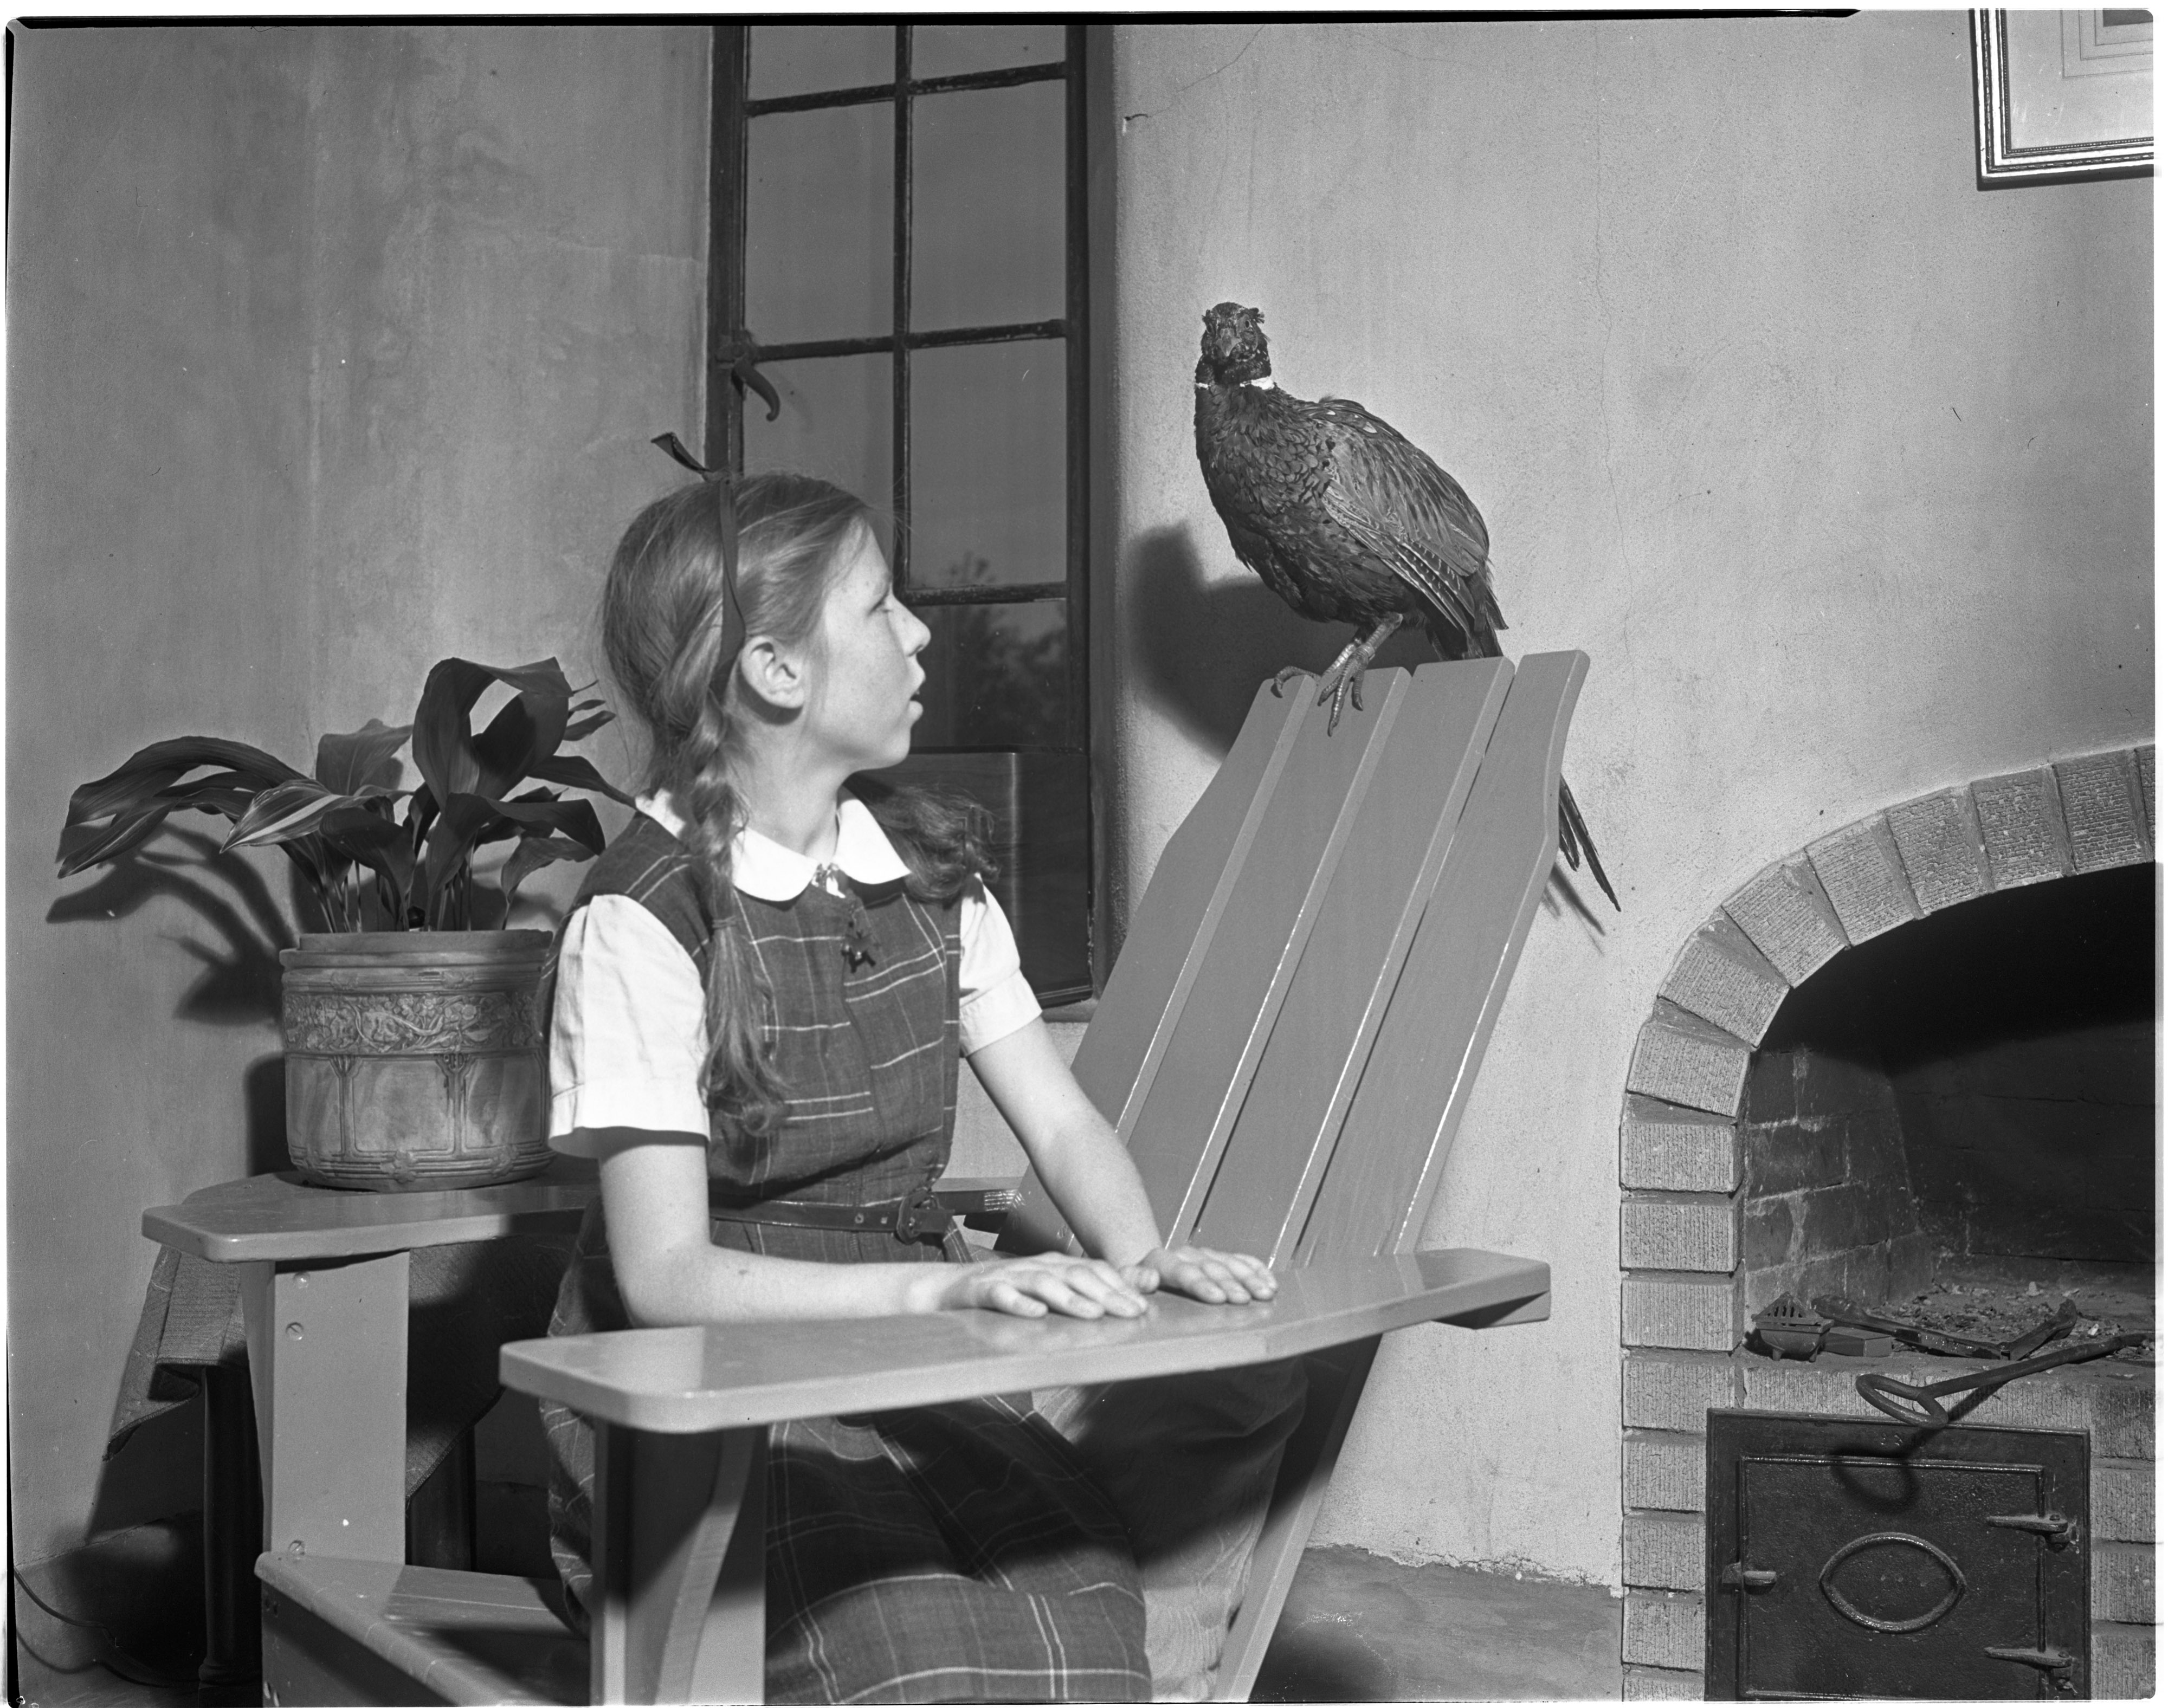 Joan Franklin and Pet Pheasant image